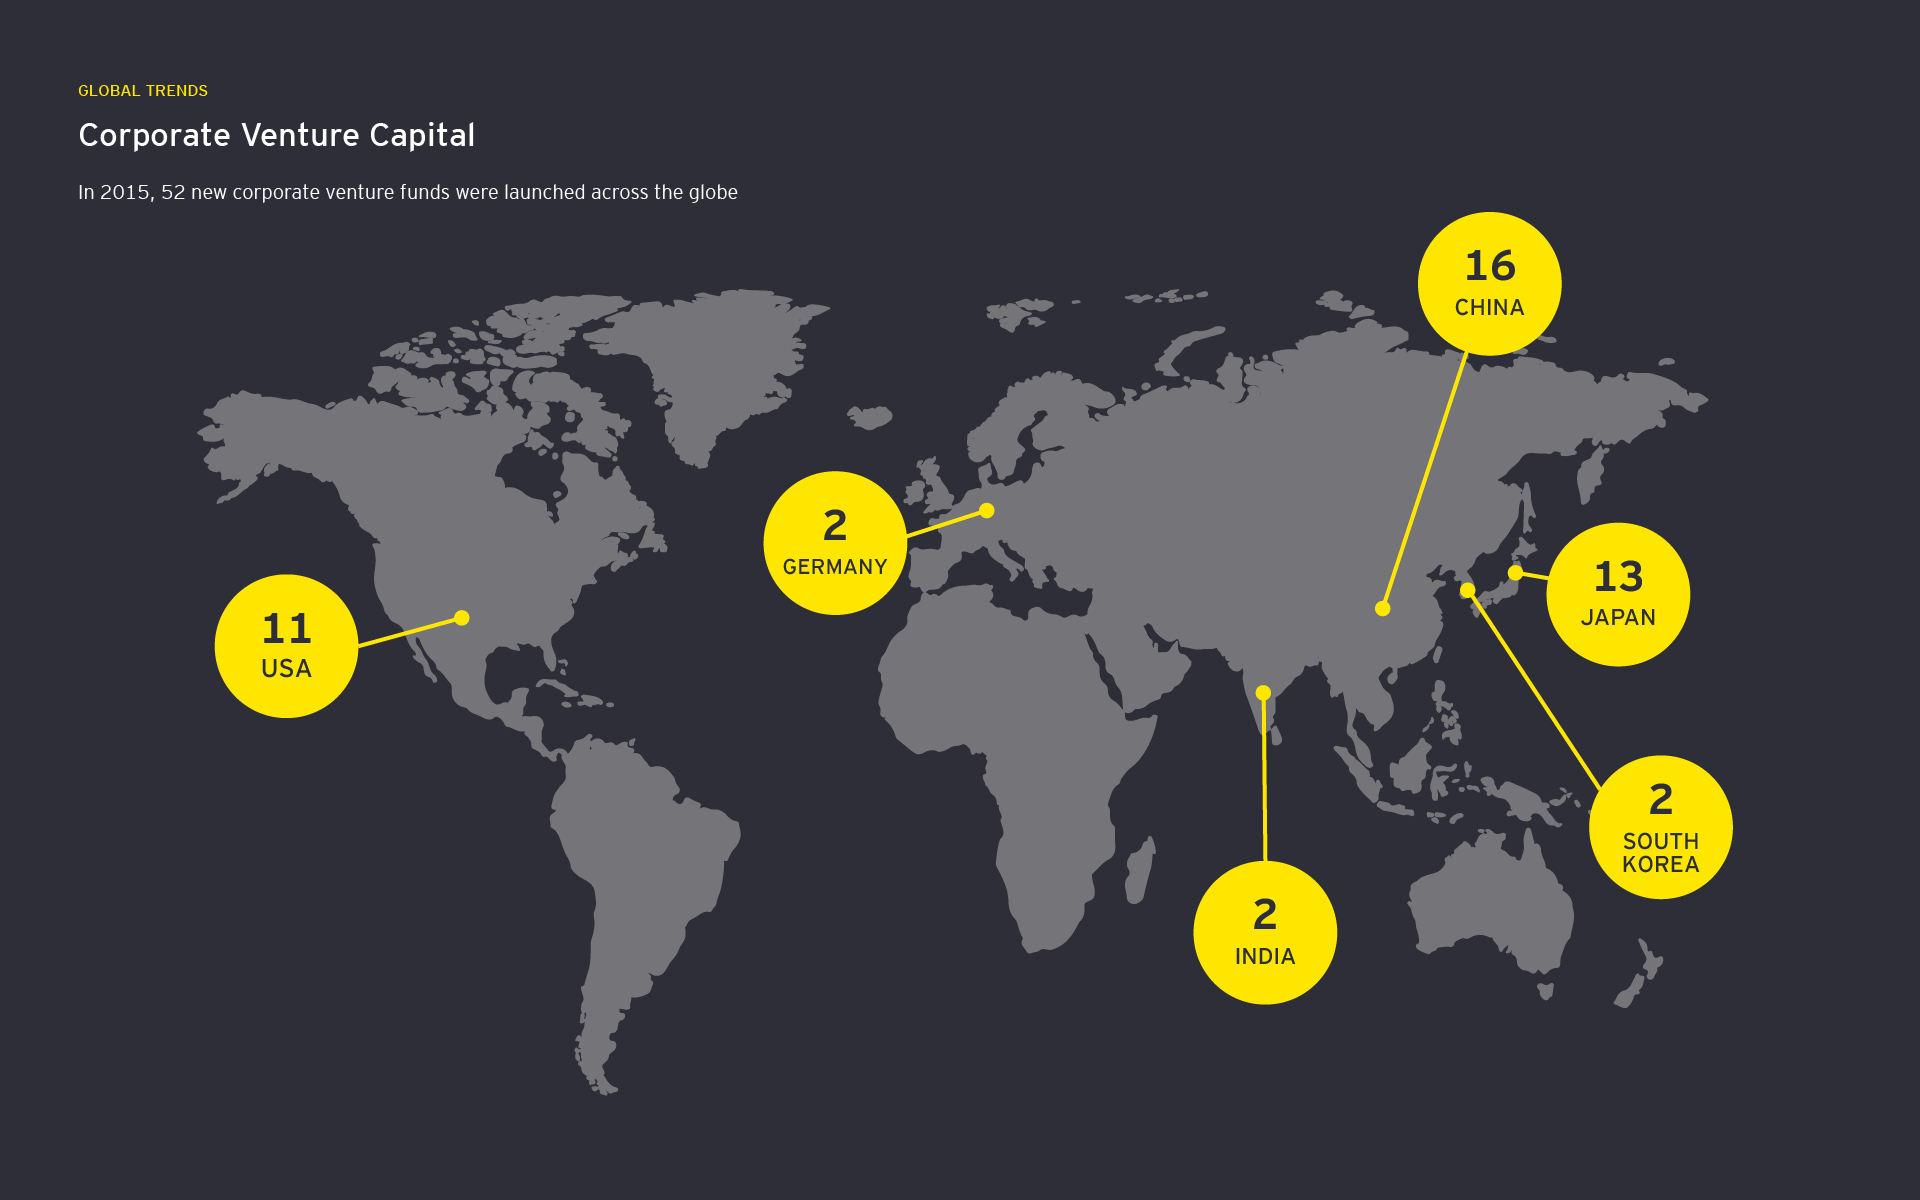 World map showing where CV funds were launched in 2015